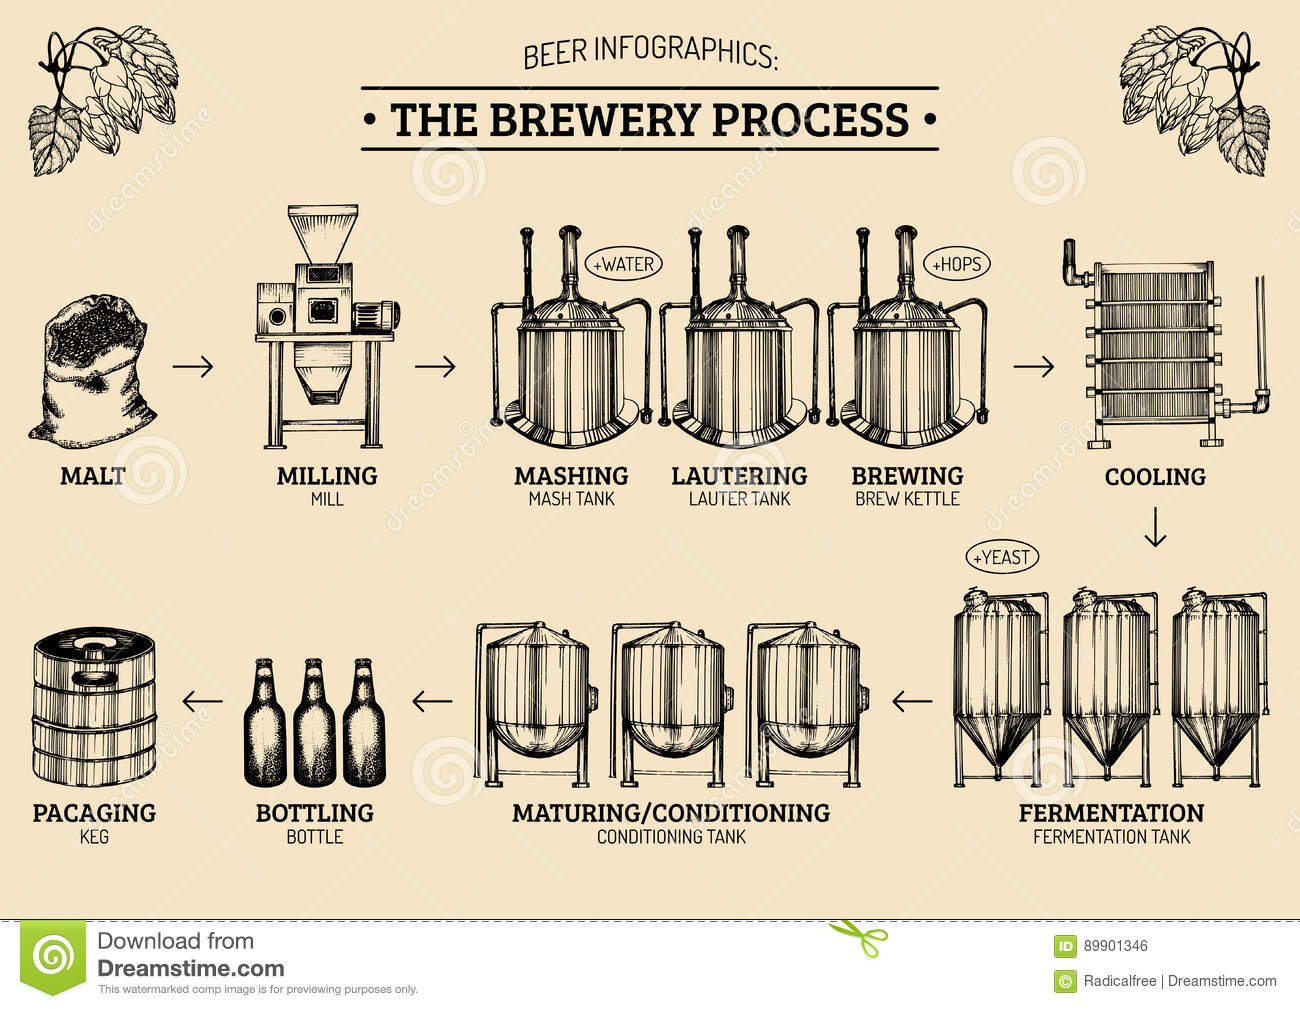 Let's Get You Homebrewing!